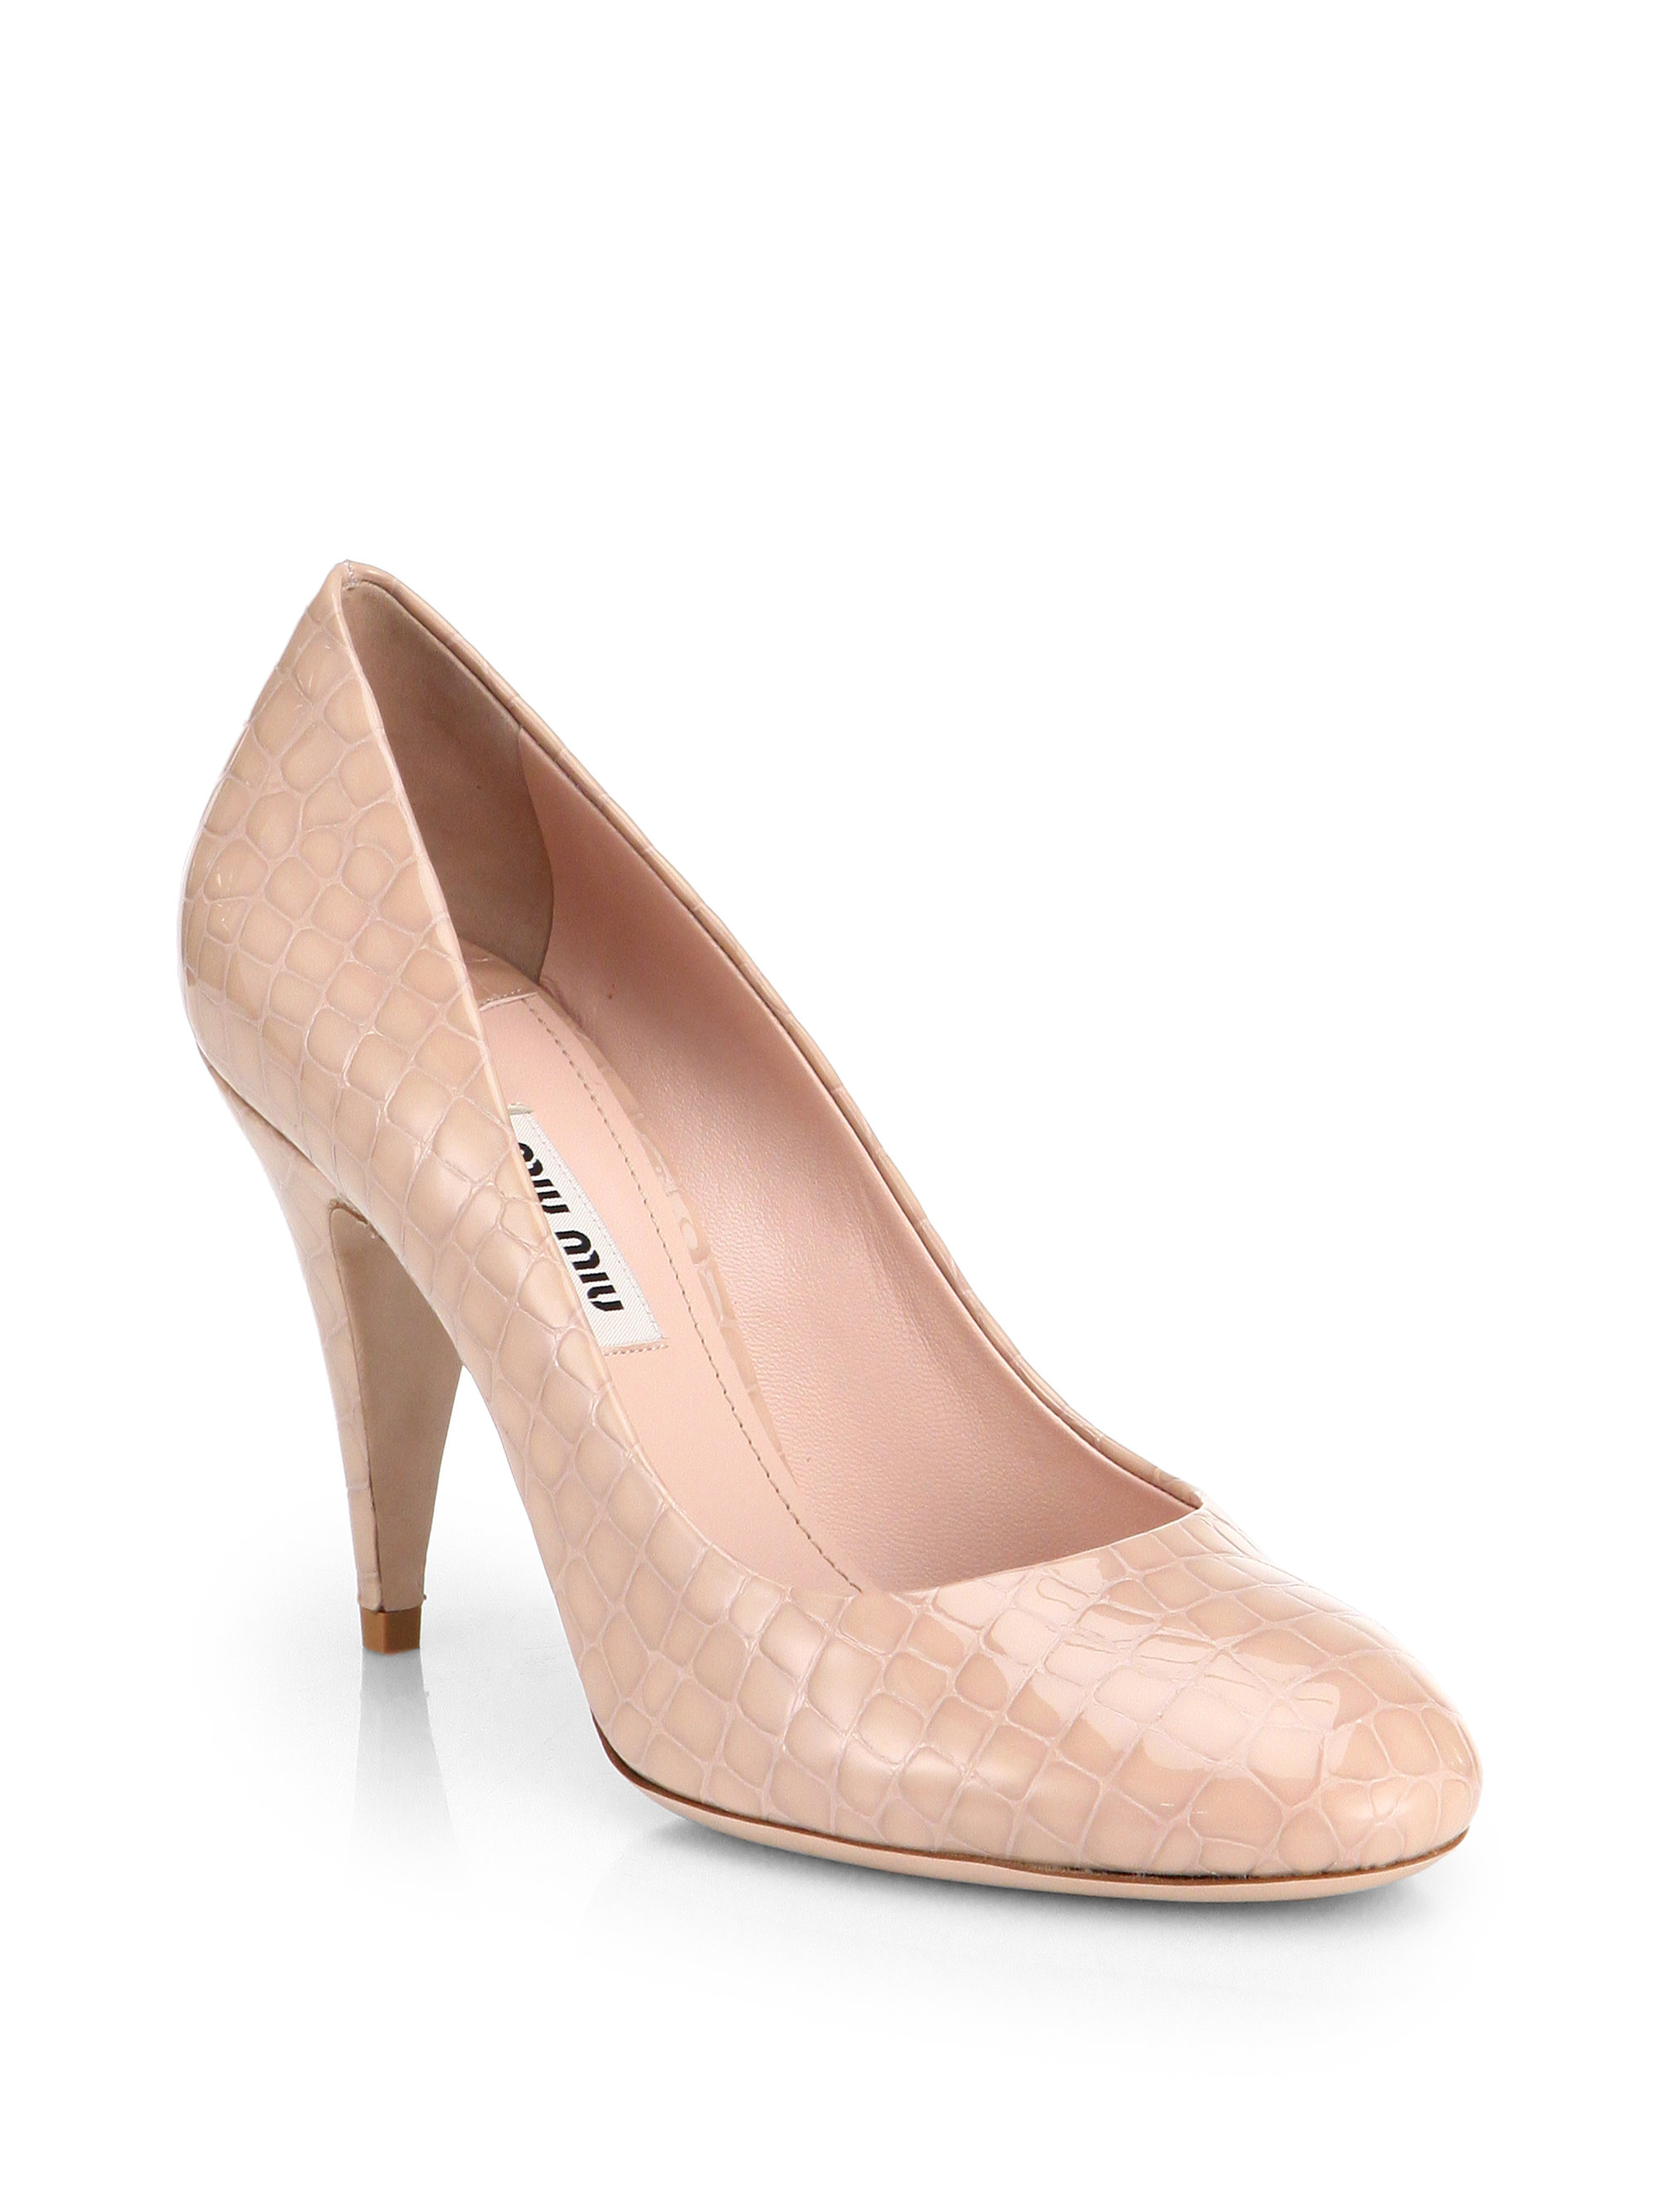 Miu Miu Embossed Leather Pumps fast delivery online discount with credit card outlet authentic sale how much JBdBI0OERj